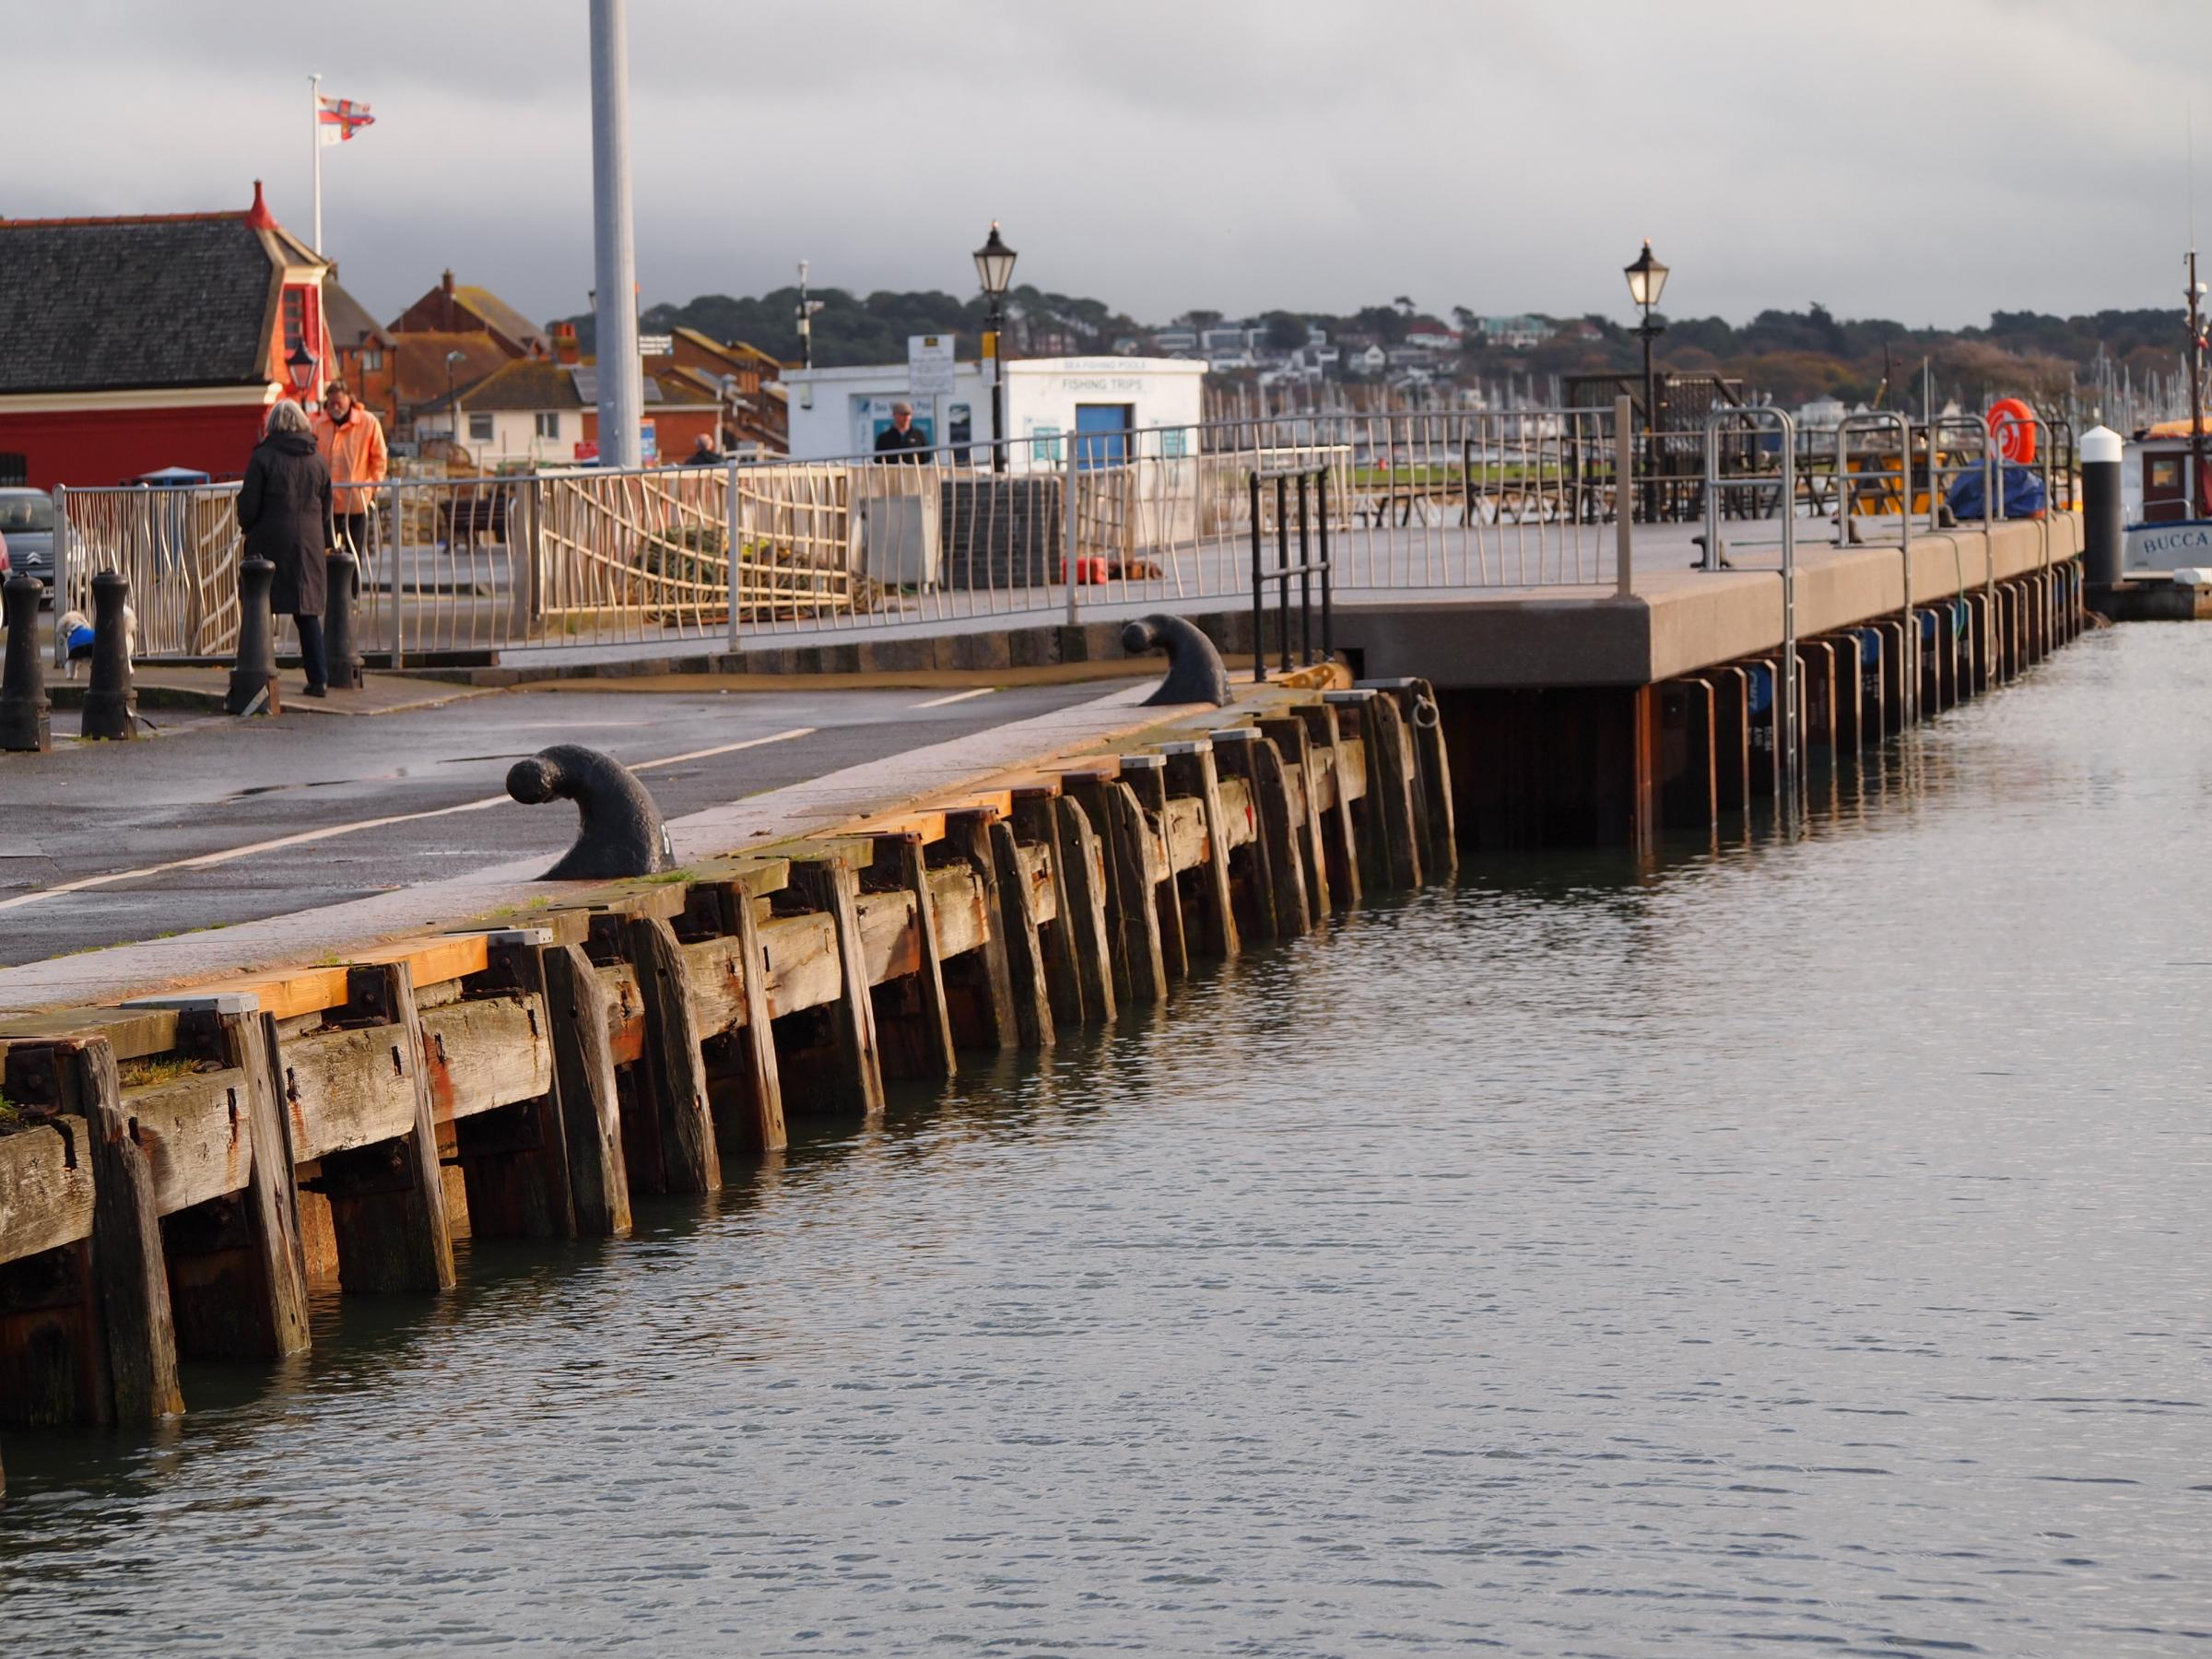 Poole's Town Quay